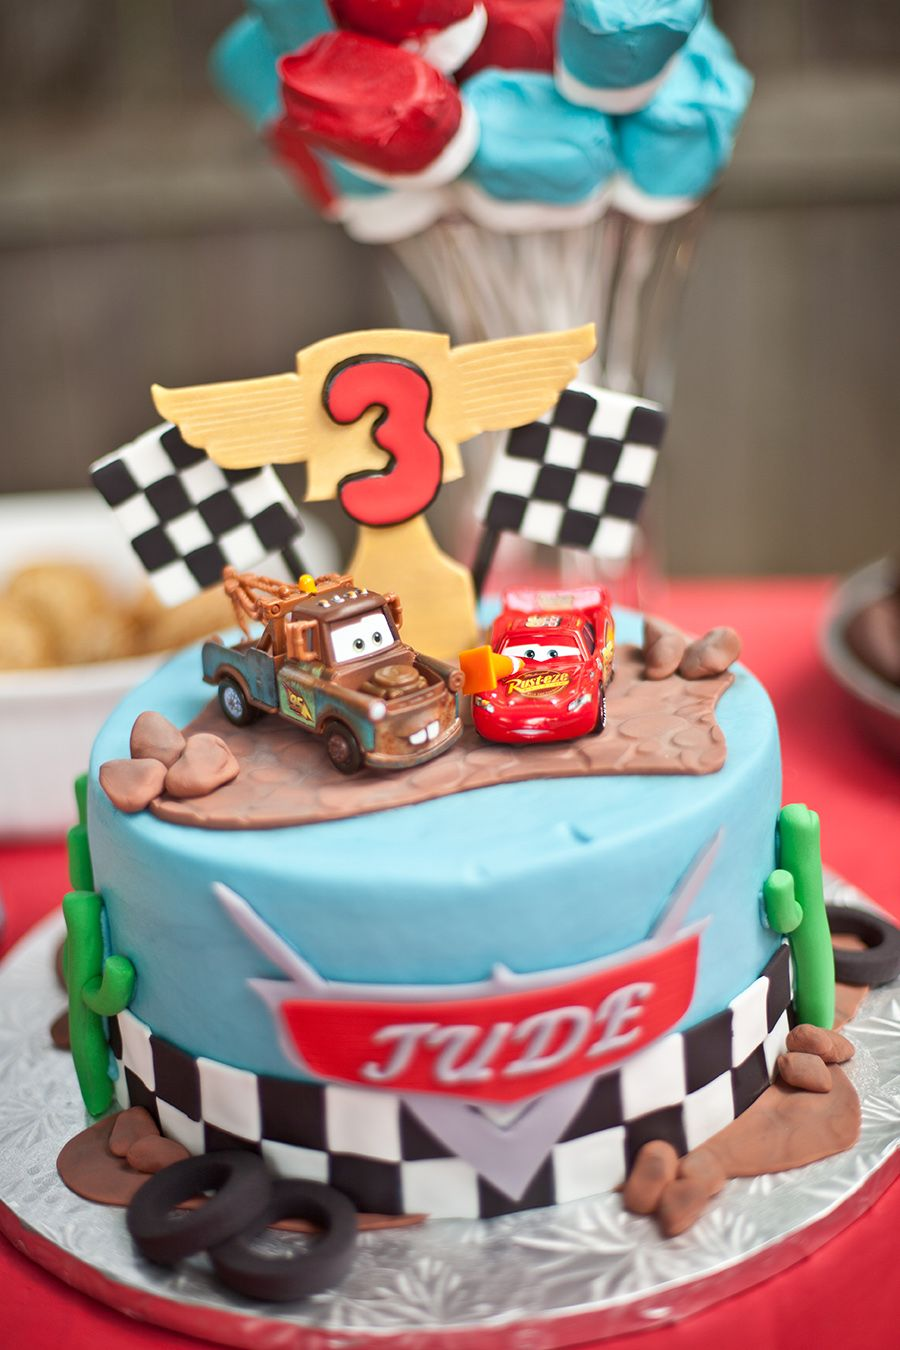 Astounding We Heart Parties Cars Themed 3Rd Birthday Party With Images Funny Birthday Cards Online Alyptdamsfinfo